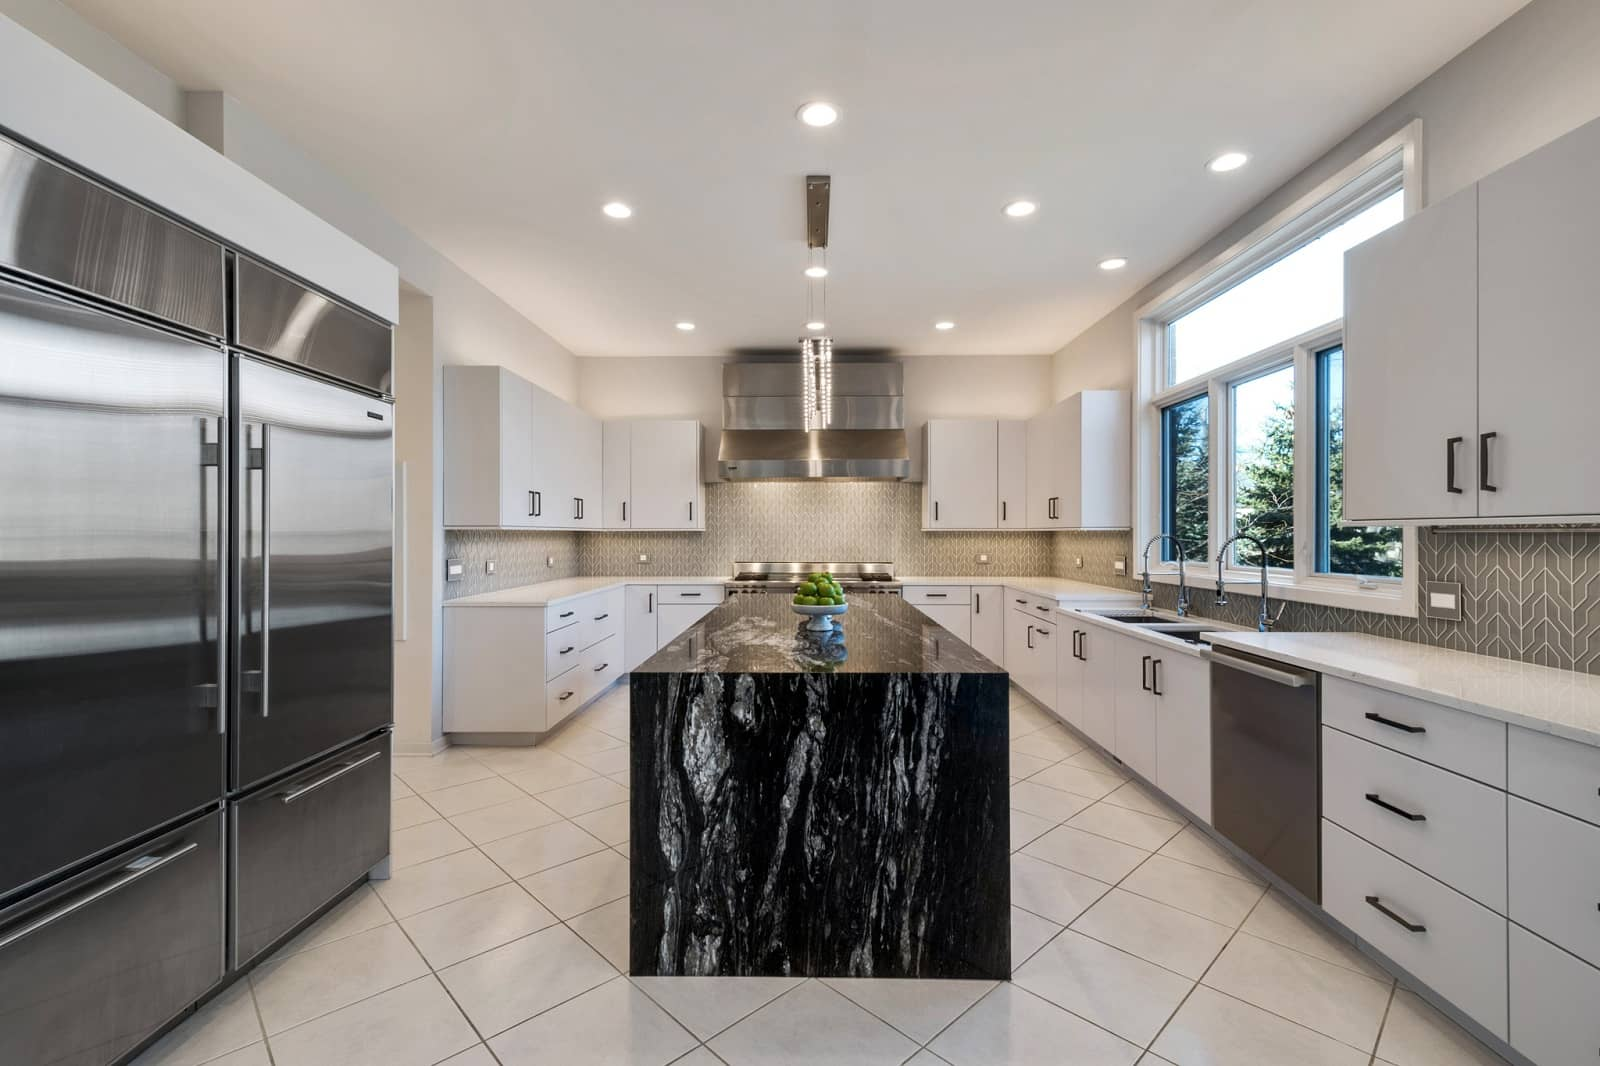 Real Estate Photography in Waukegan - IL - USA - Kitchen View